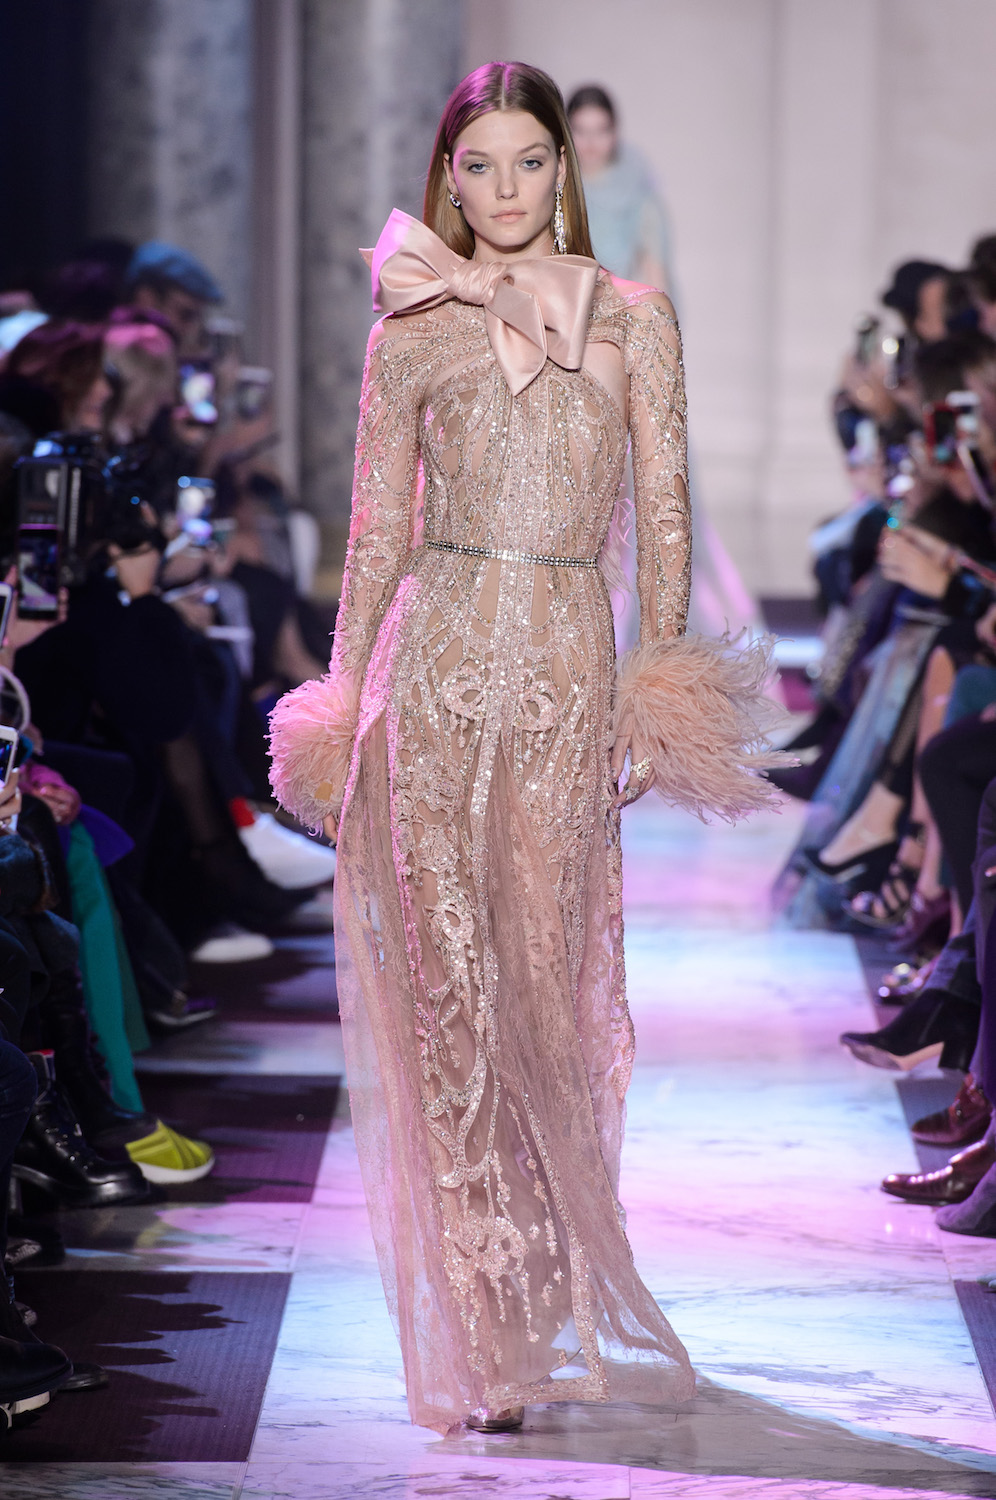 Runway Review for Elie Saab Spring 2018 Couture - Savoir Flair